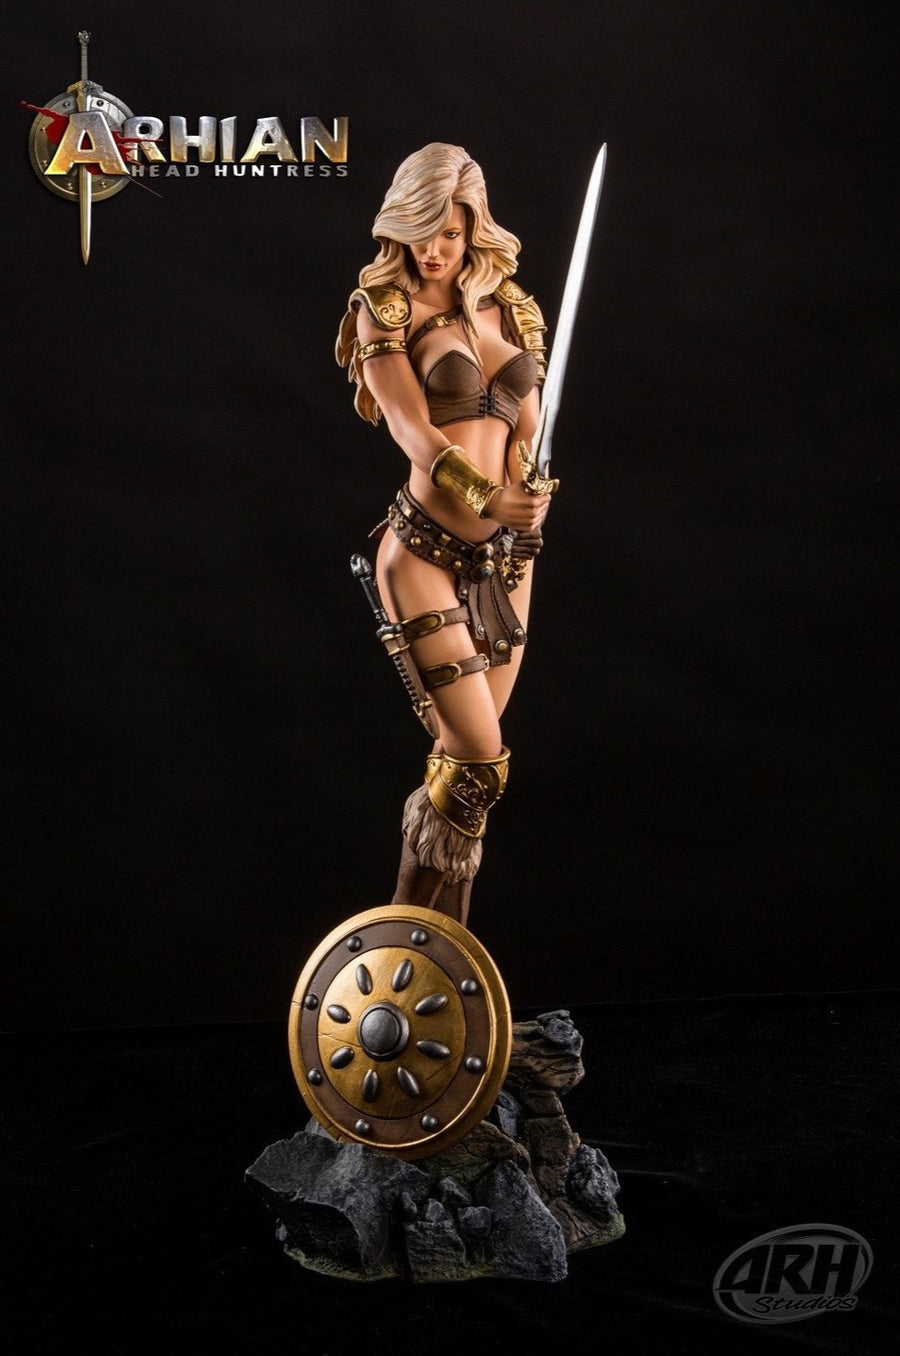 ARHIAN Head Huntress 1/4 Scale Statue by ARH Studios